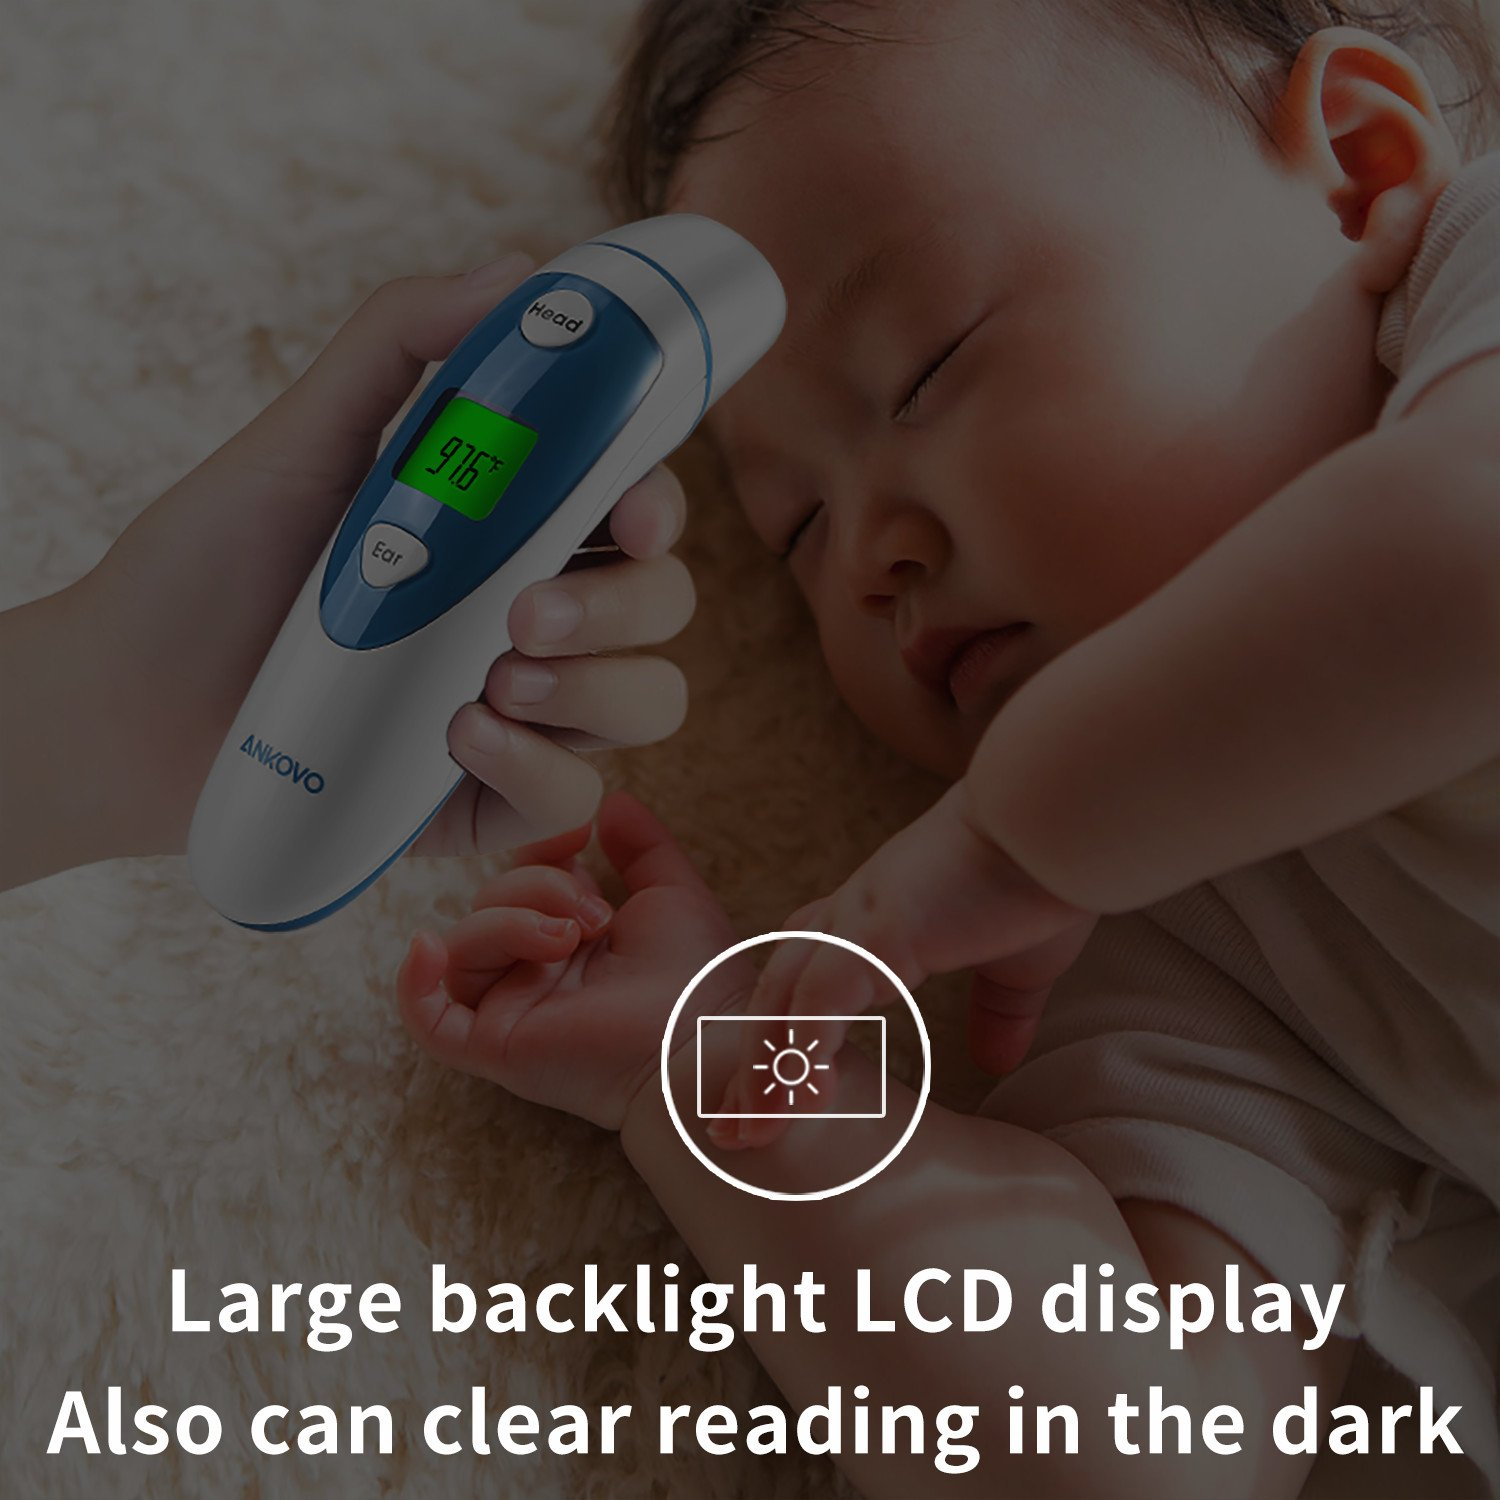 ANKOVO Thermometer For Fever Digital Forehead and Ear Thermometer Medical Infrared for Baby Kids Adults with Fever Indicator by ANKOVO (Image #7)